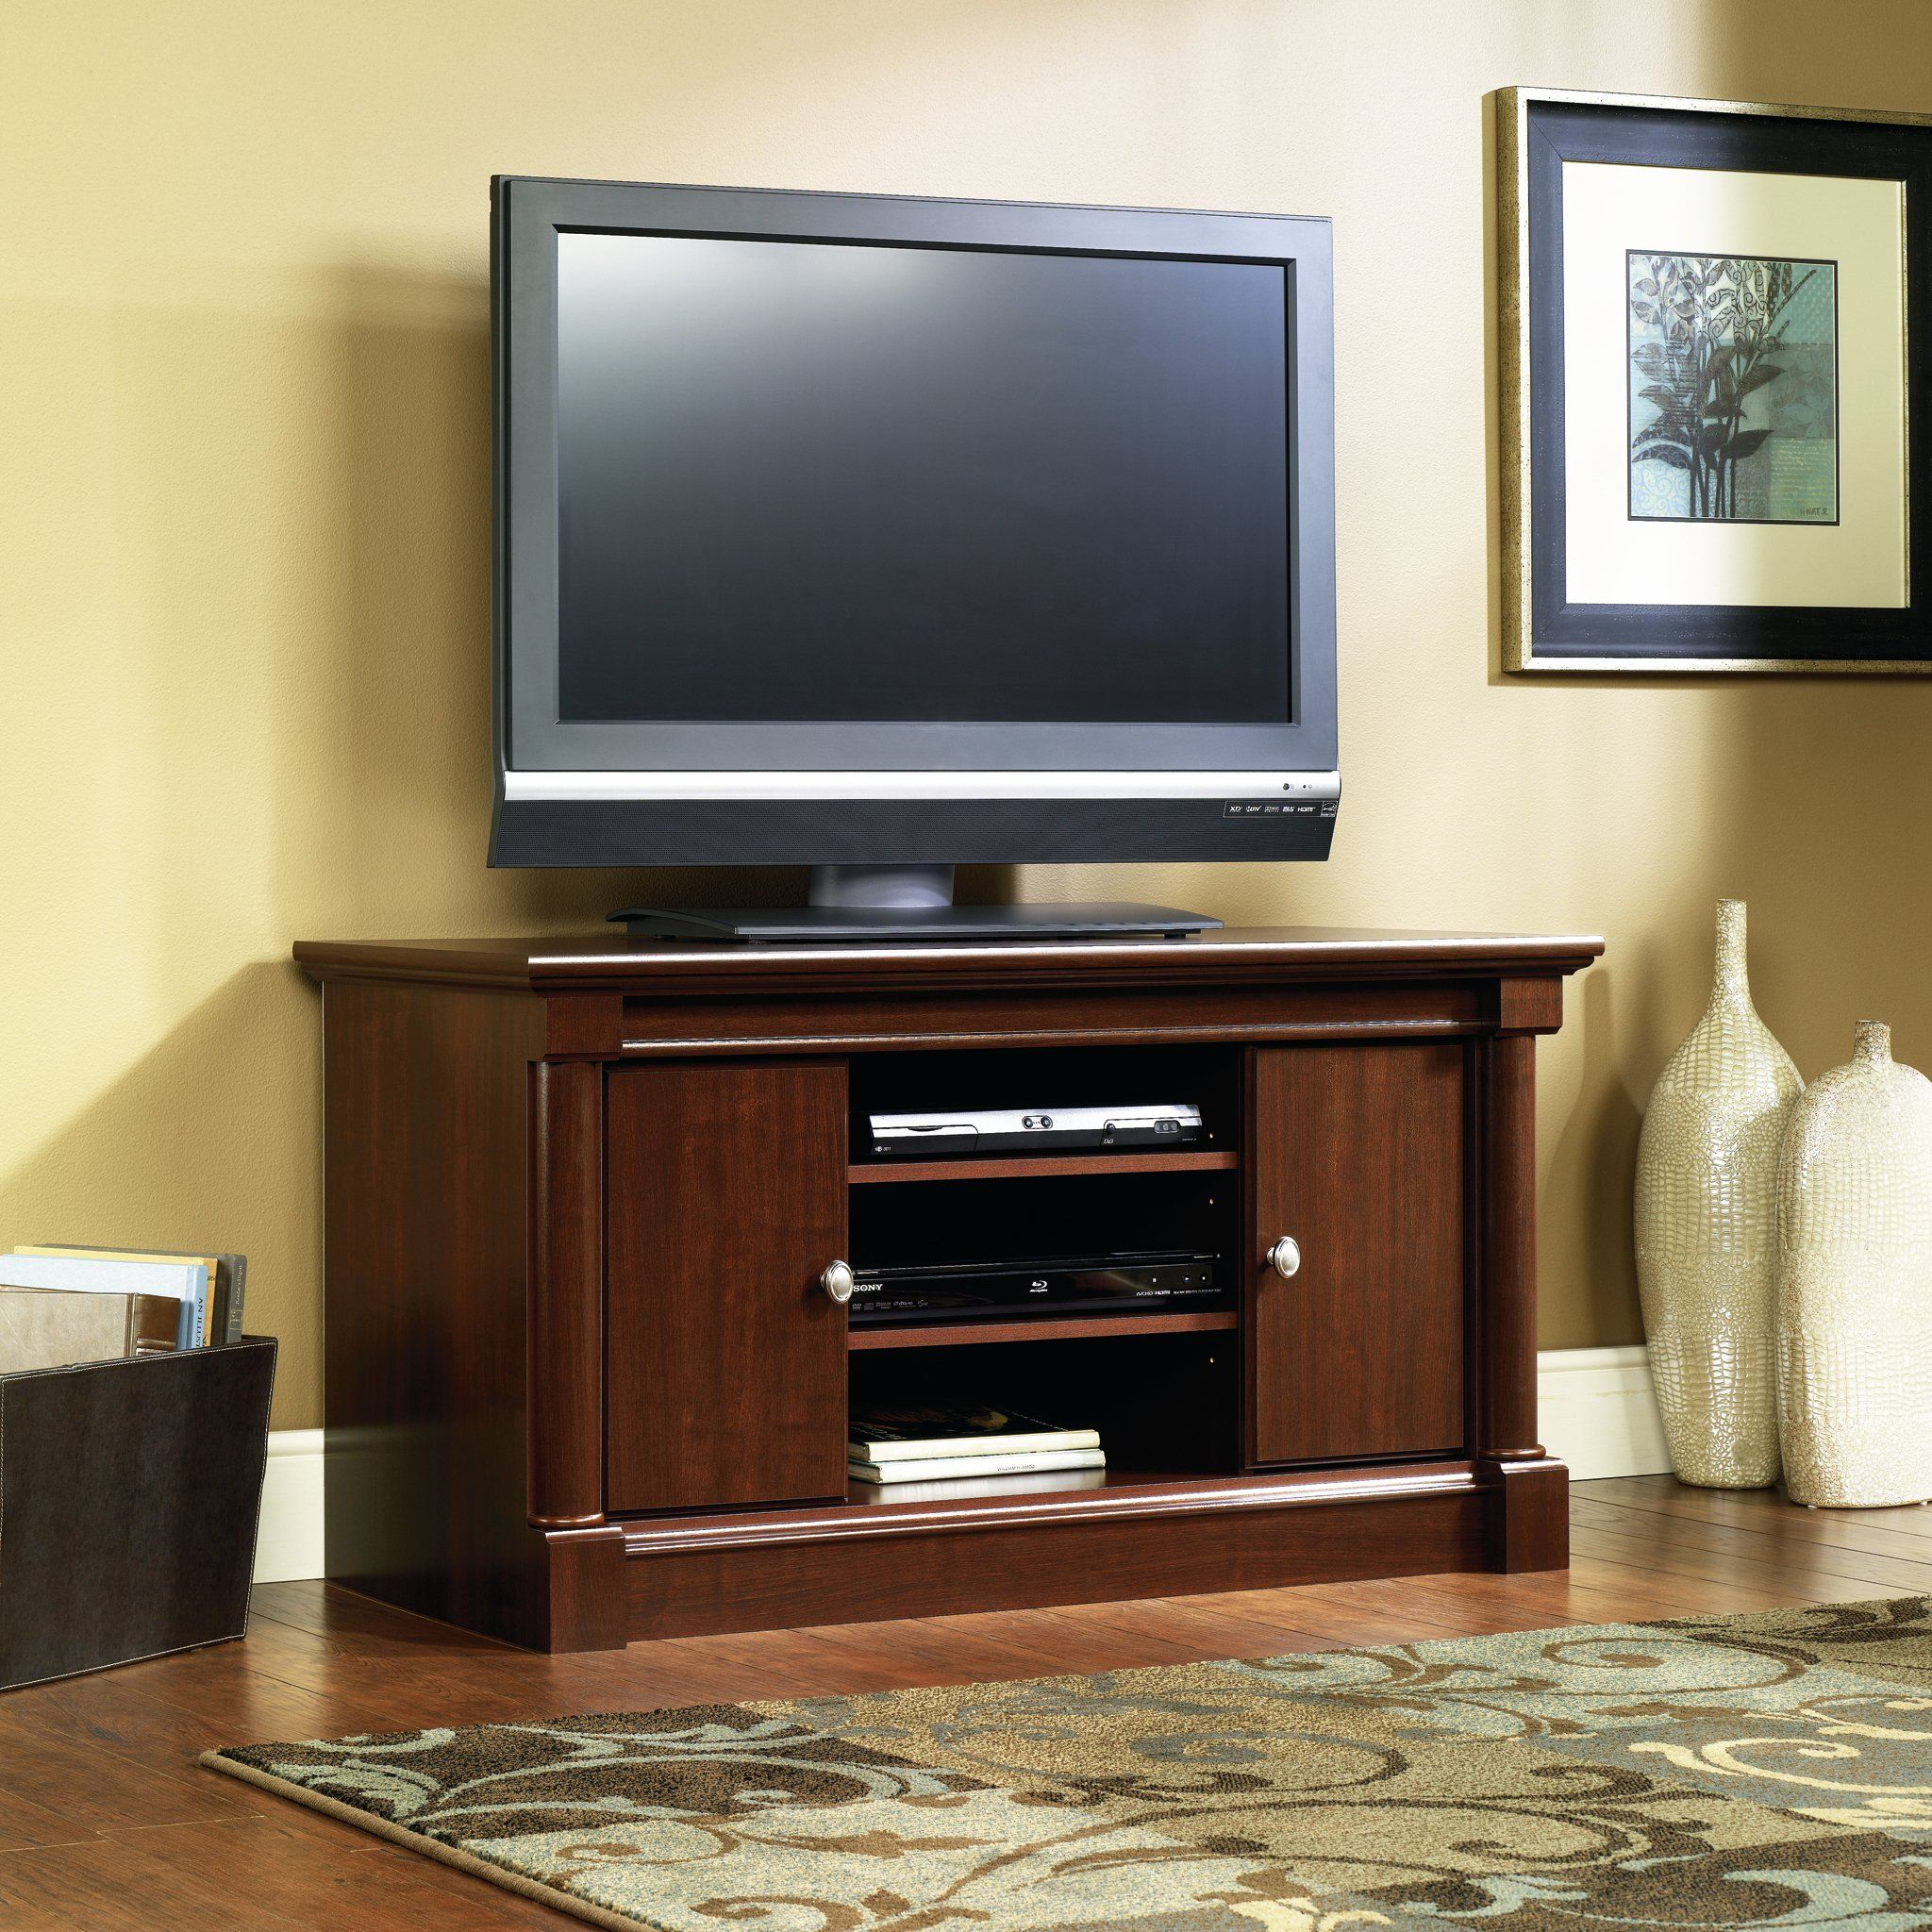 Cherry Panel Tv Stand Palladia Tv Stand Furniture Wood Tv Console Tv Stand And Entertainment Center